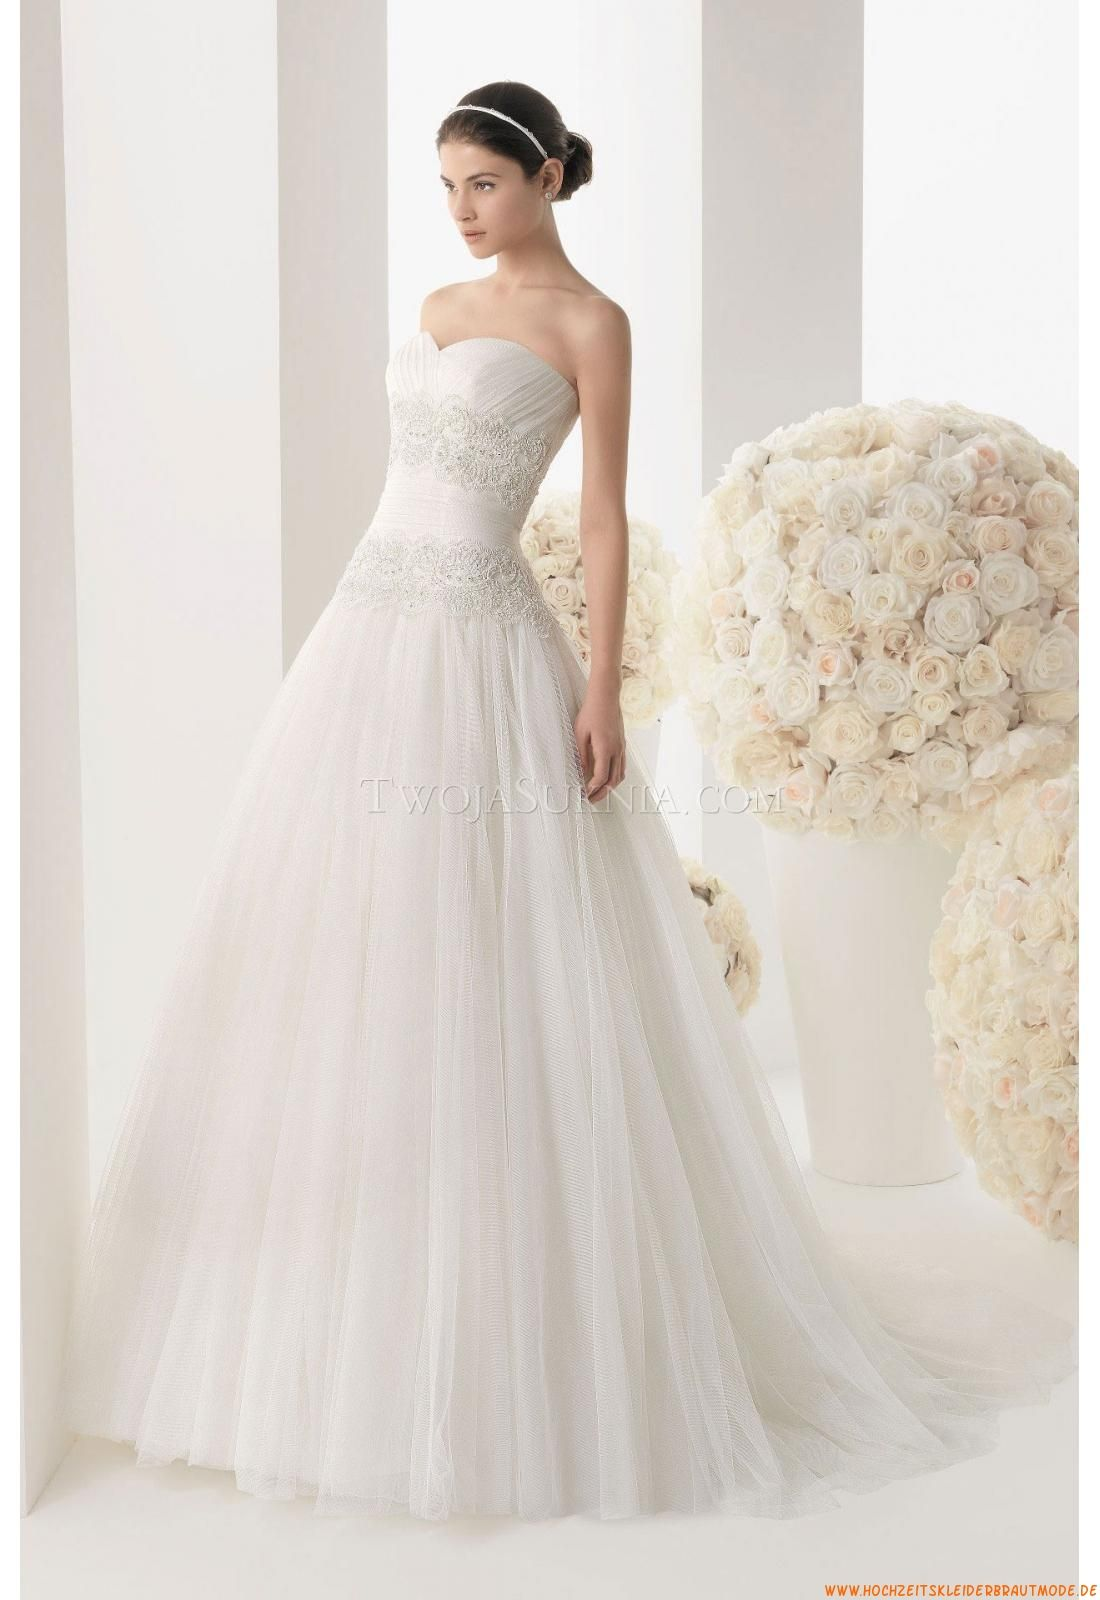 Empire Brautkleider 2014 | weddings | Pinterest | Empire ...